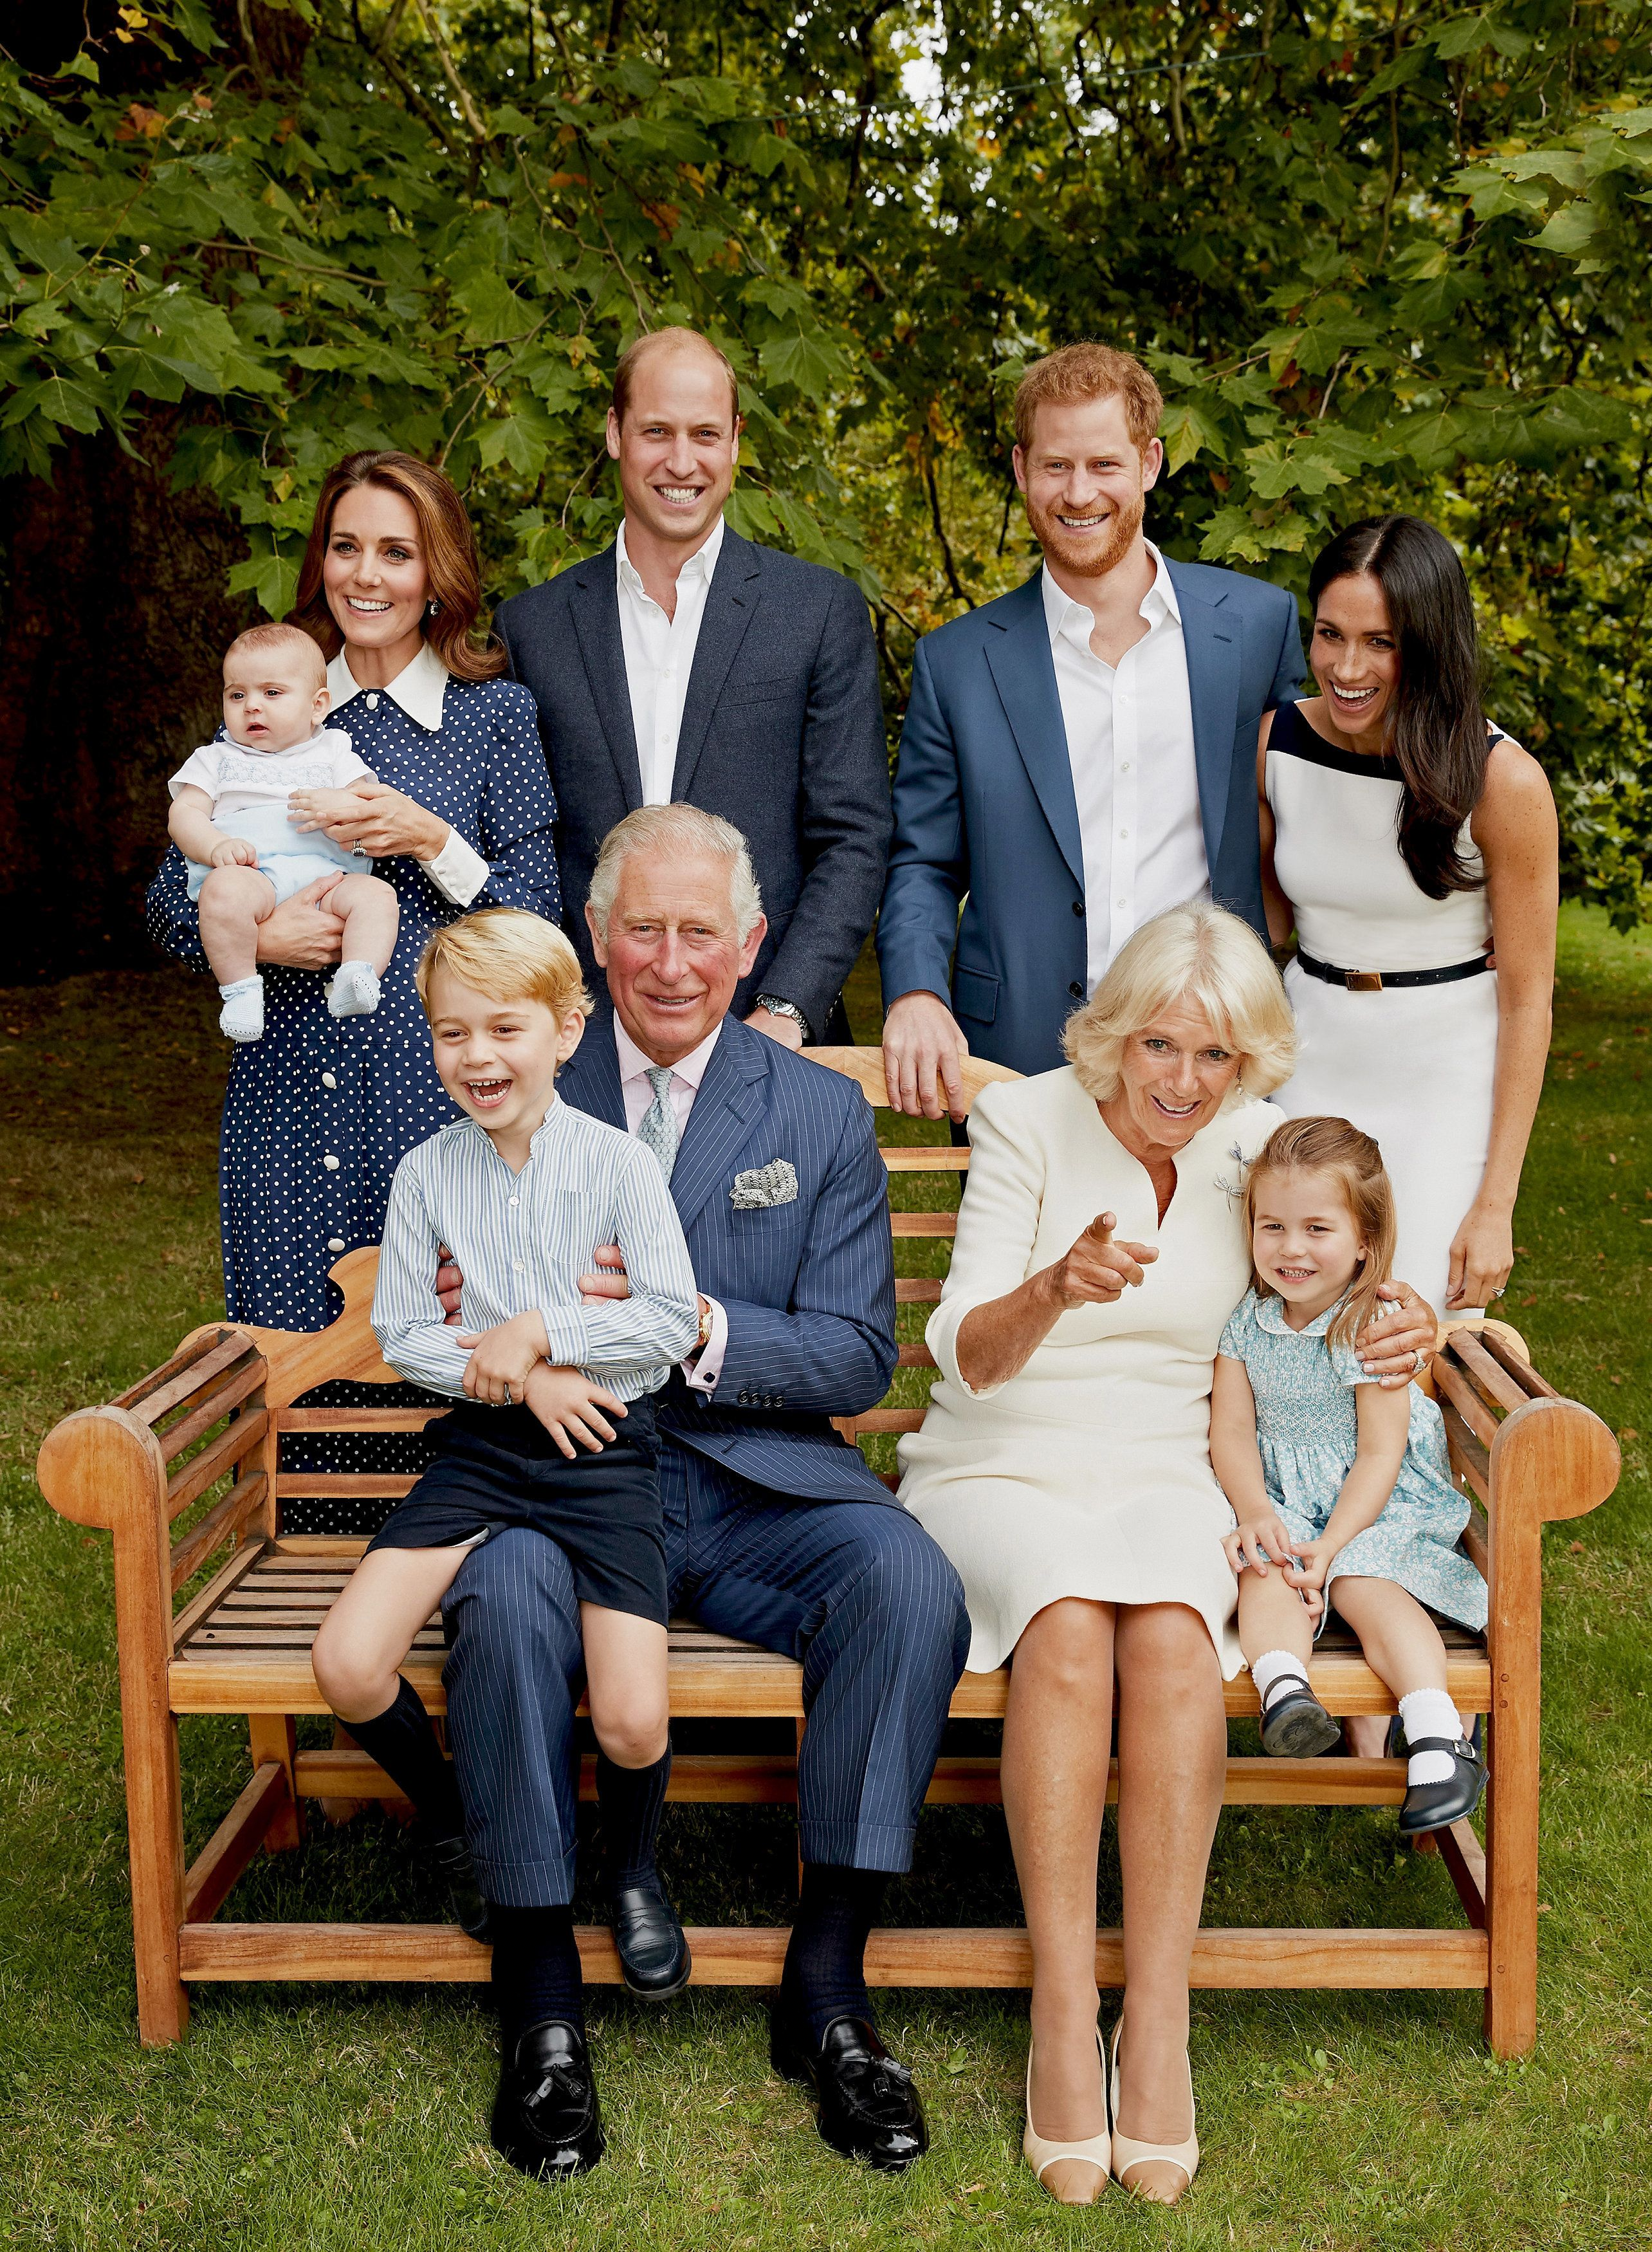 Prince Charles Celebrates 70th Birthday With Cute New Royal Family